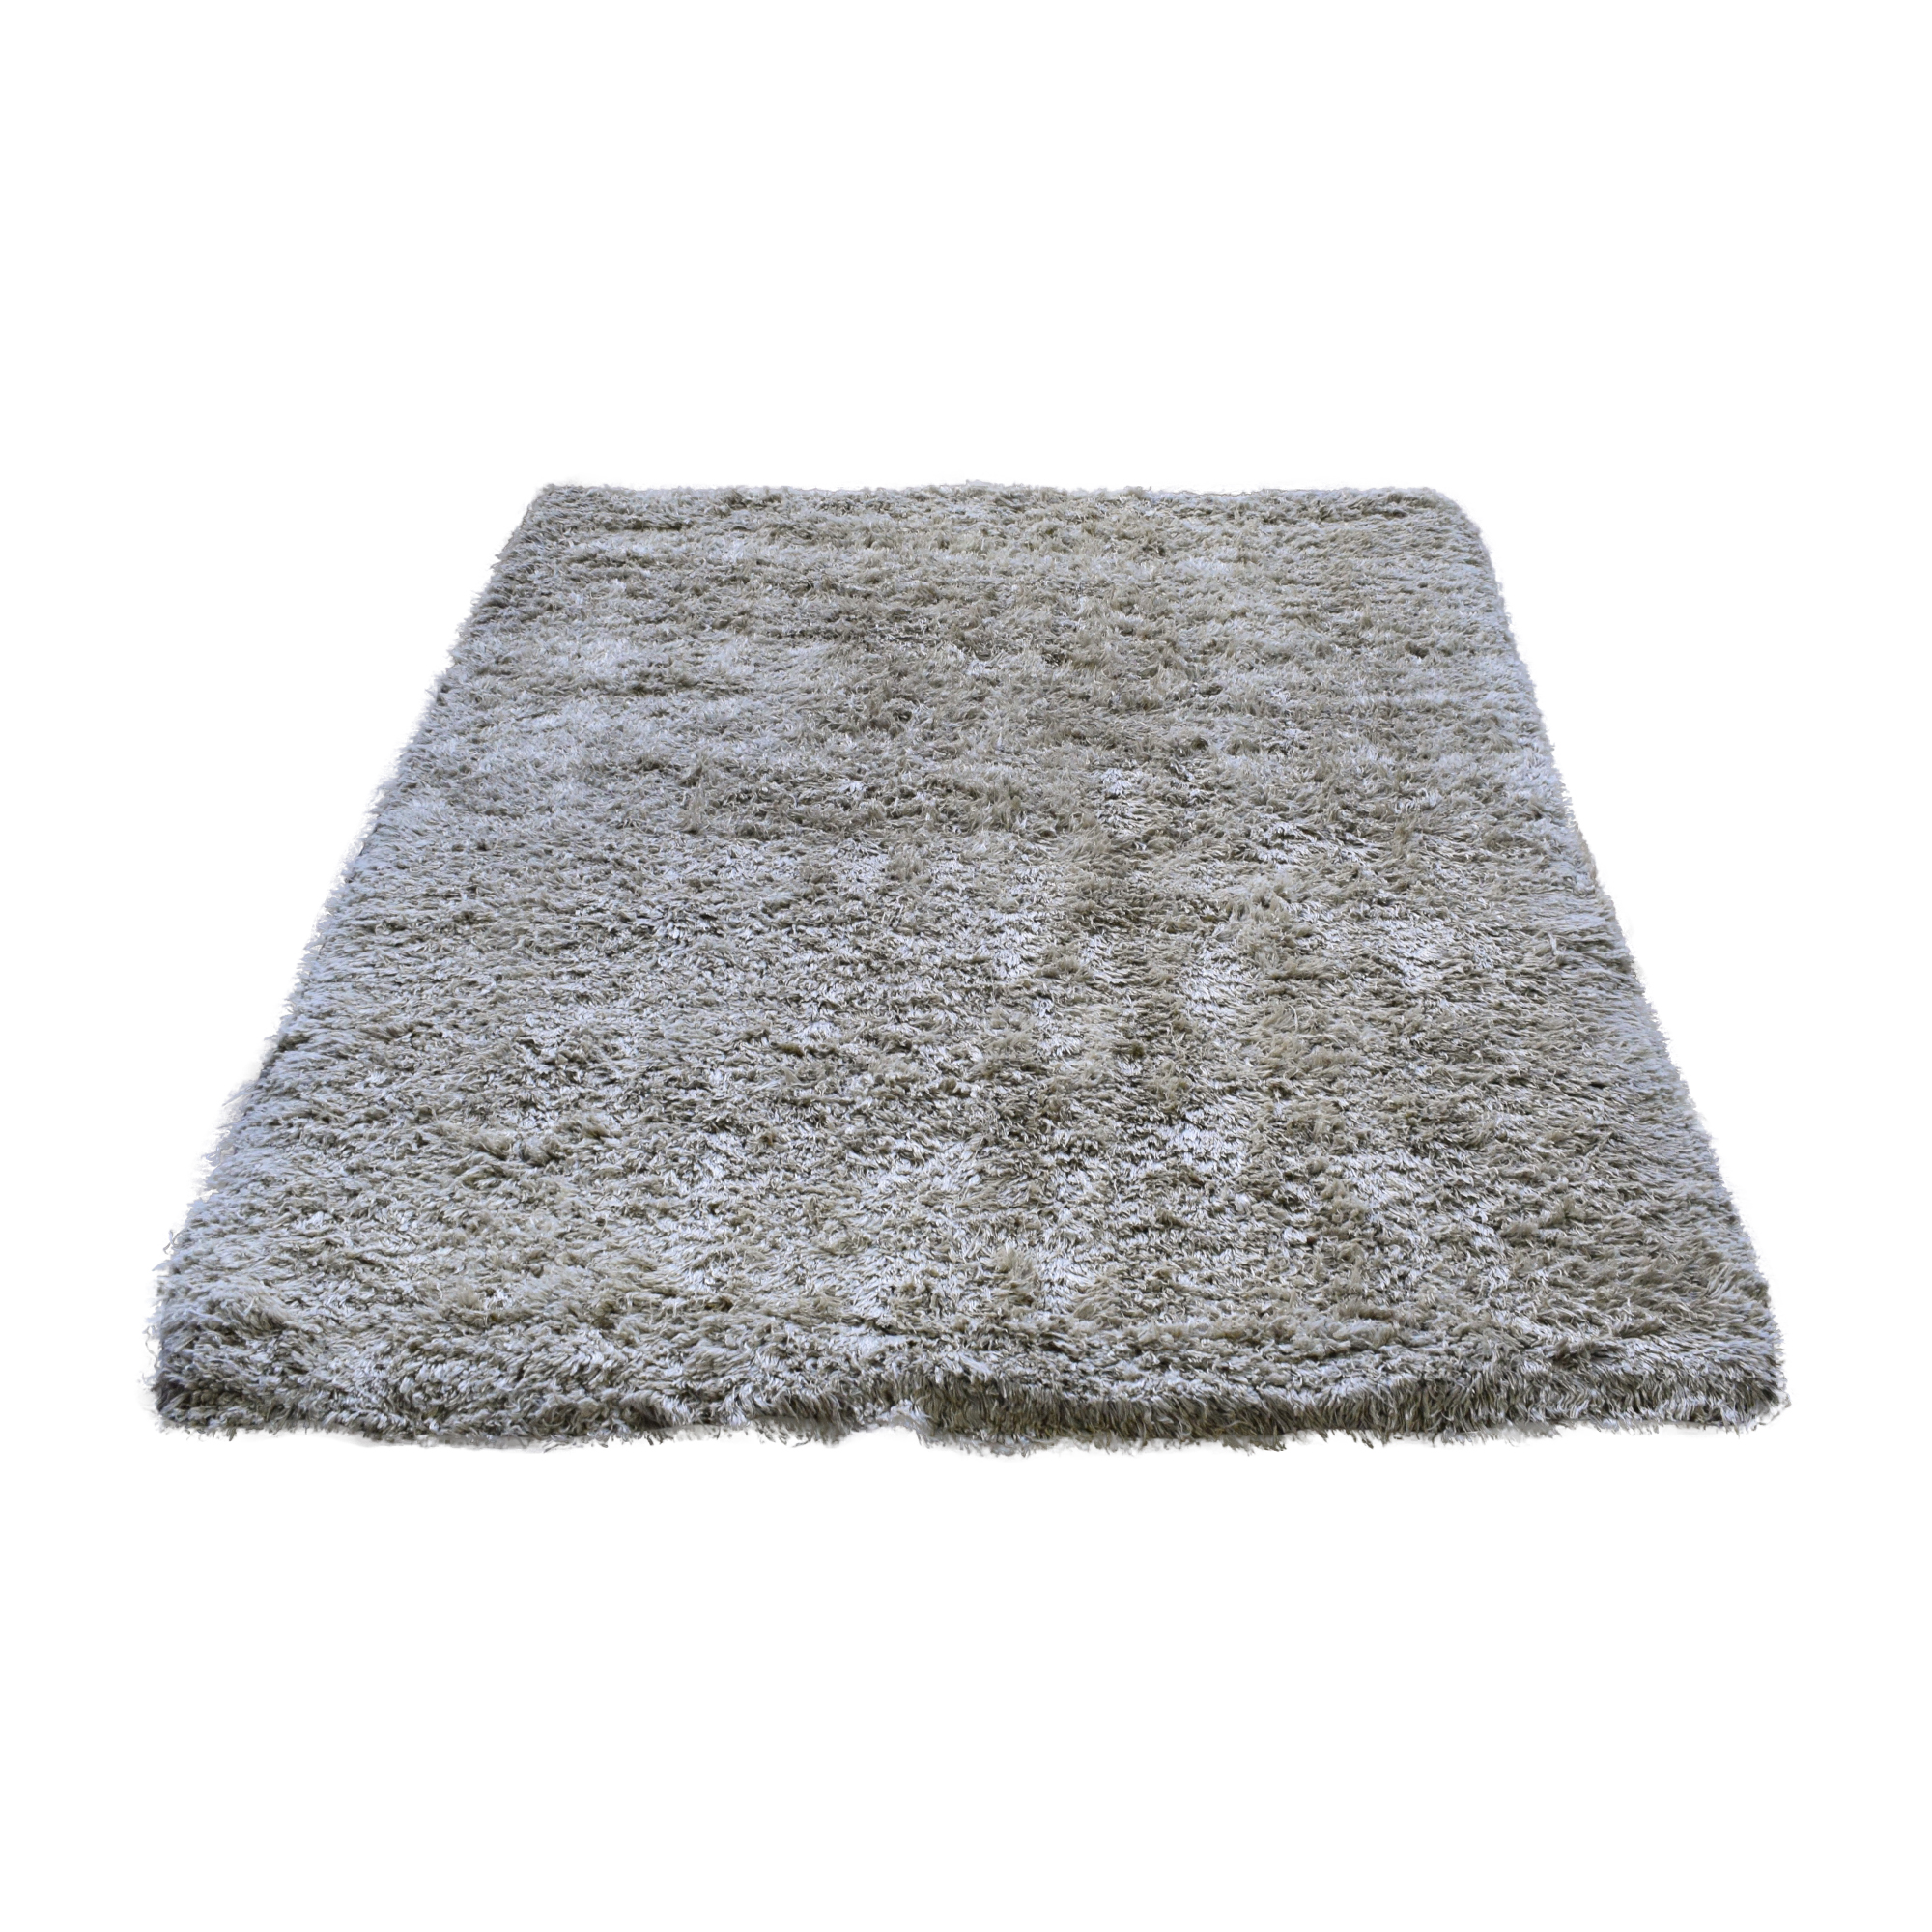 ABC Carpet & Home ABC Carpet & Home Shag Area Rug